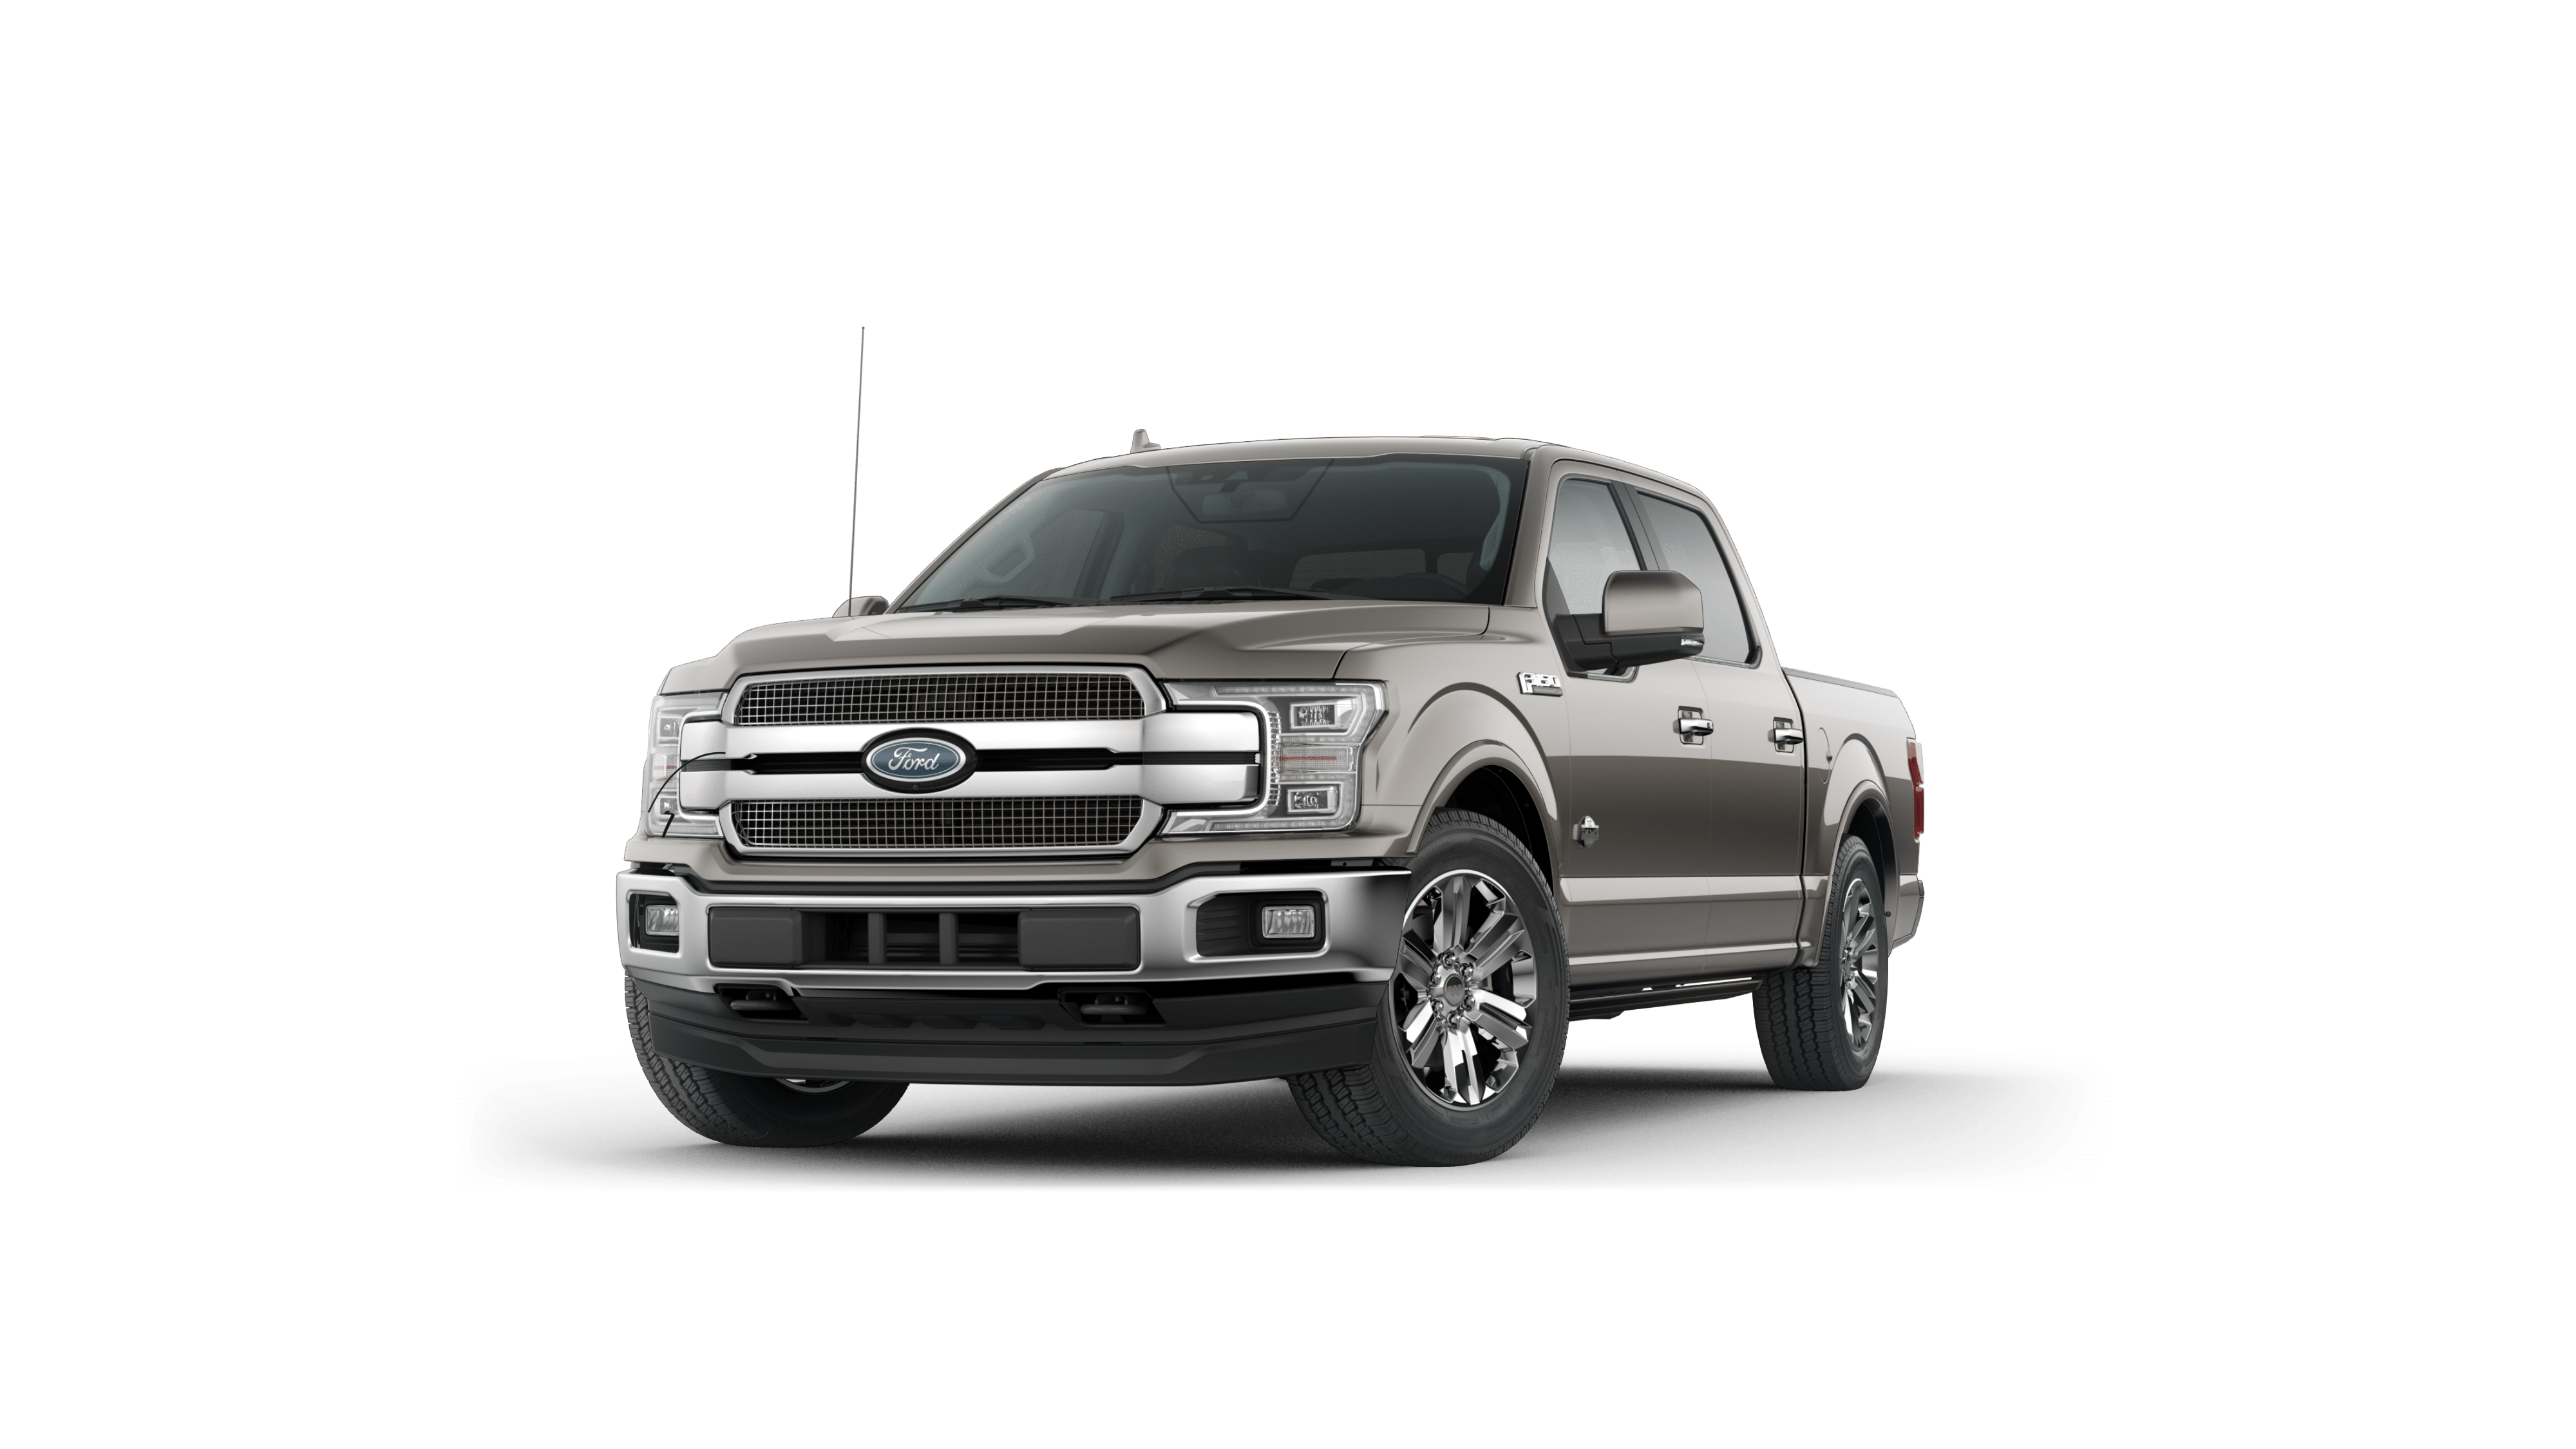 Renegade Vehicles For Sale Friendly Ford Roselle Il 2004 F 150 King Ranch 4x4 2018 Vehicle Photo In 60172 4805